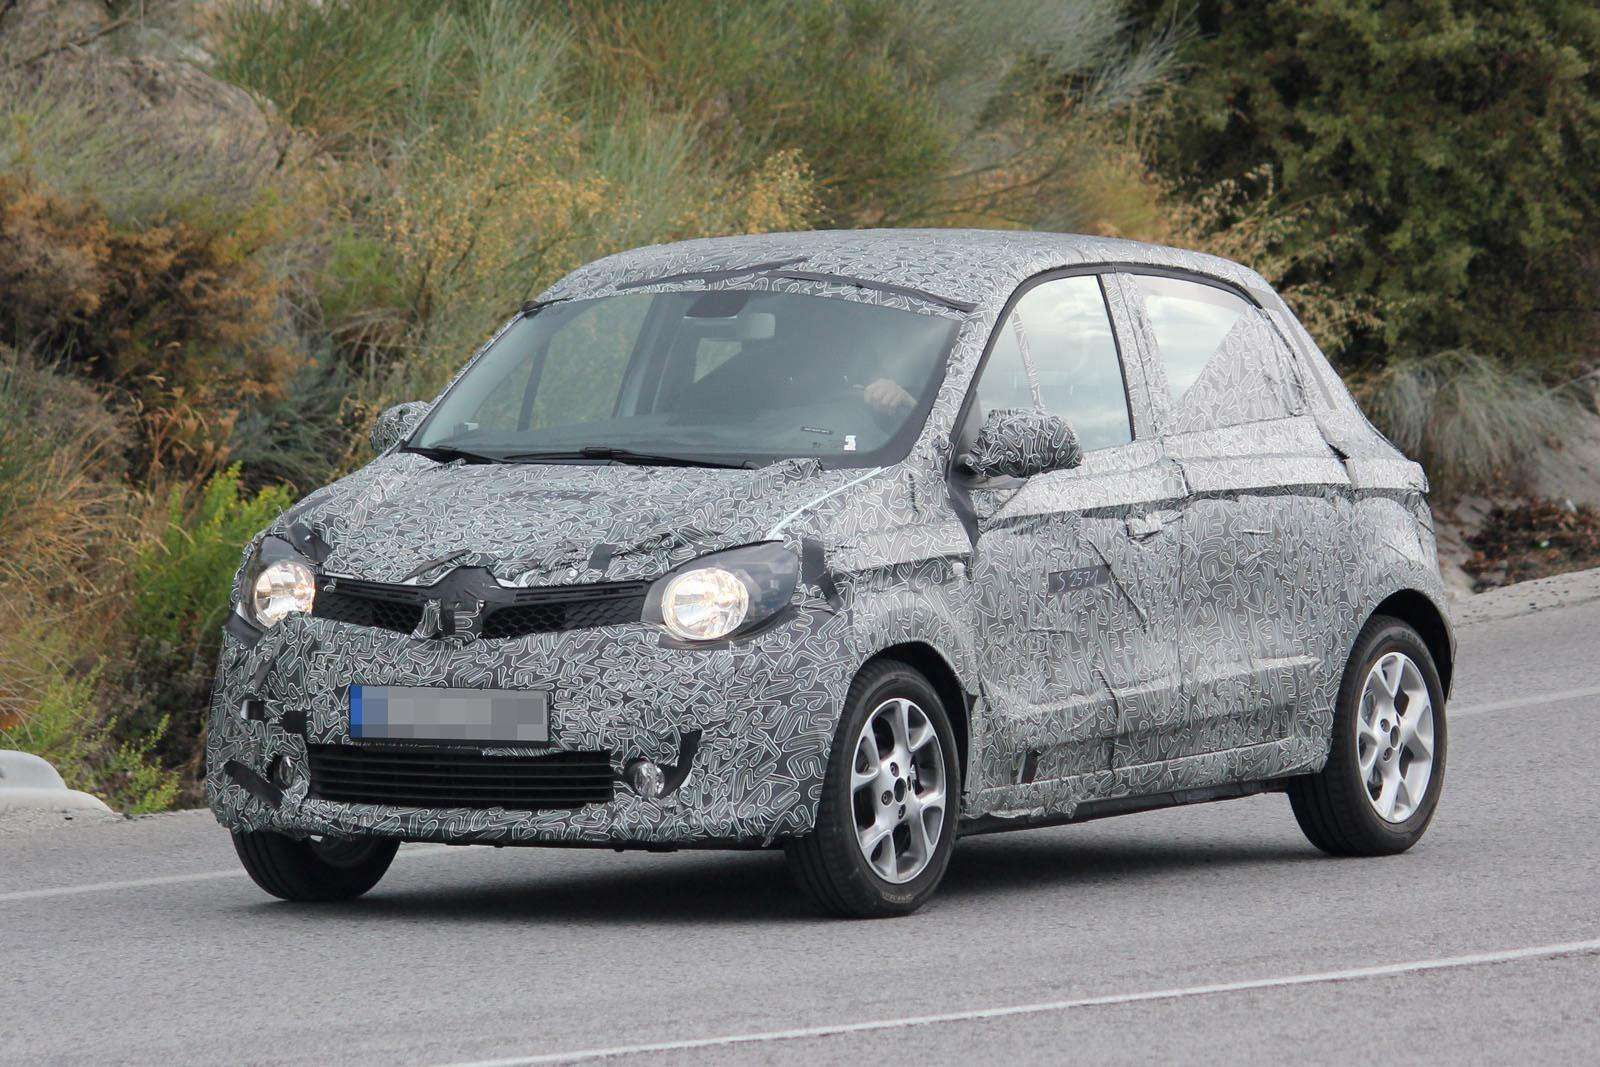 Renault Twingo 2015 Spy Photos